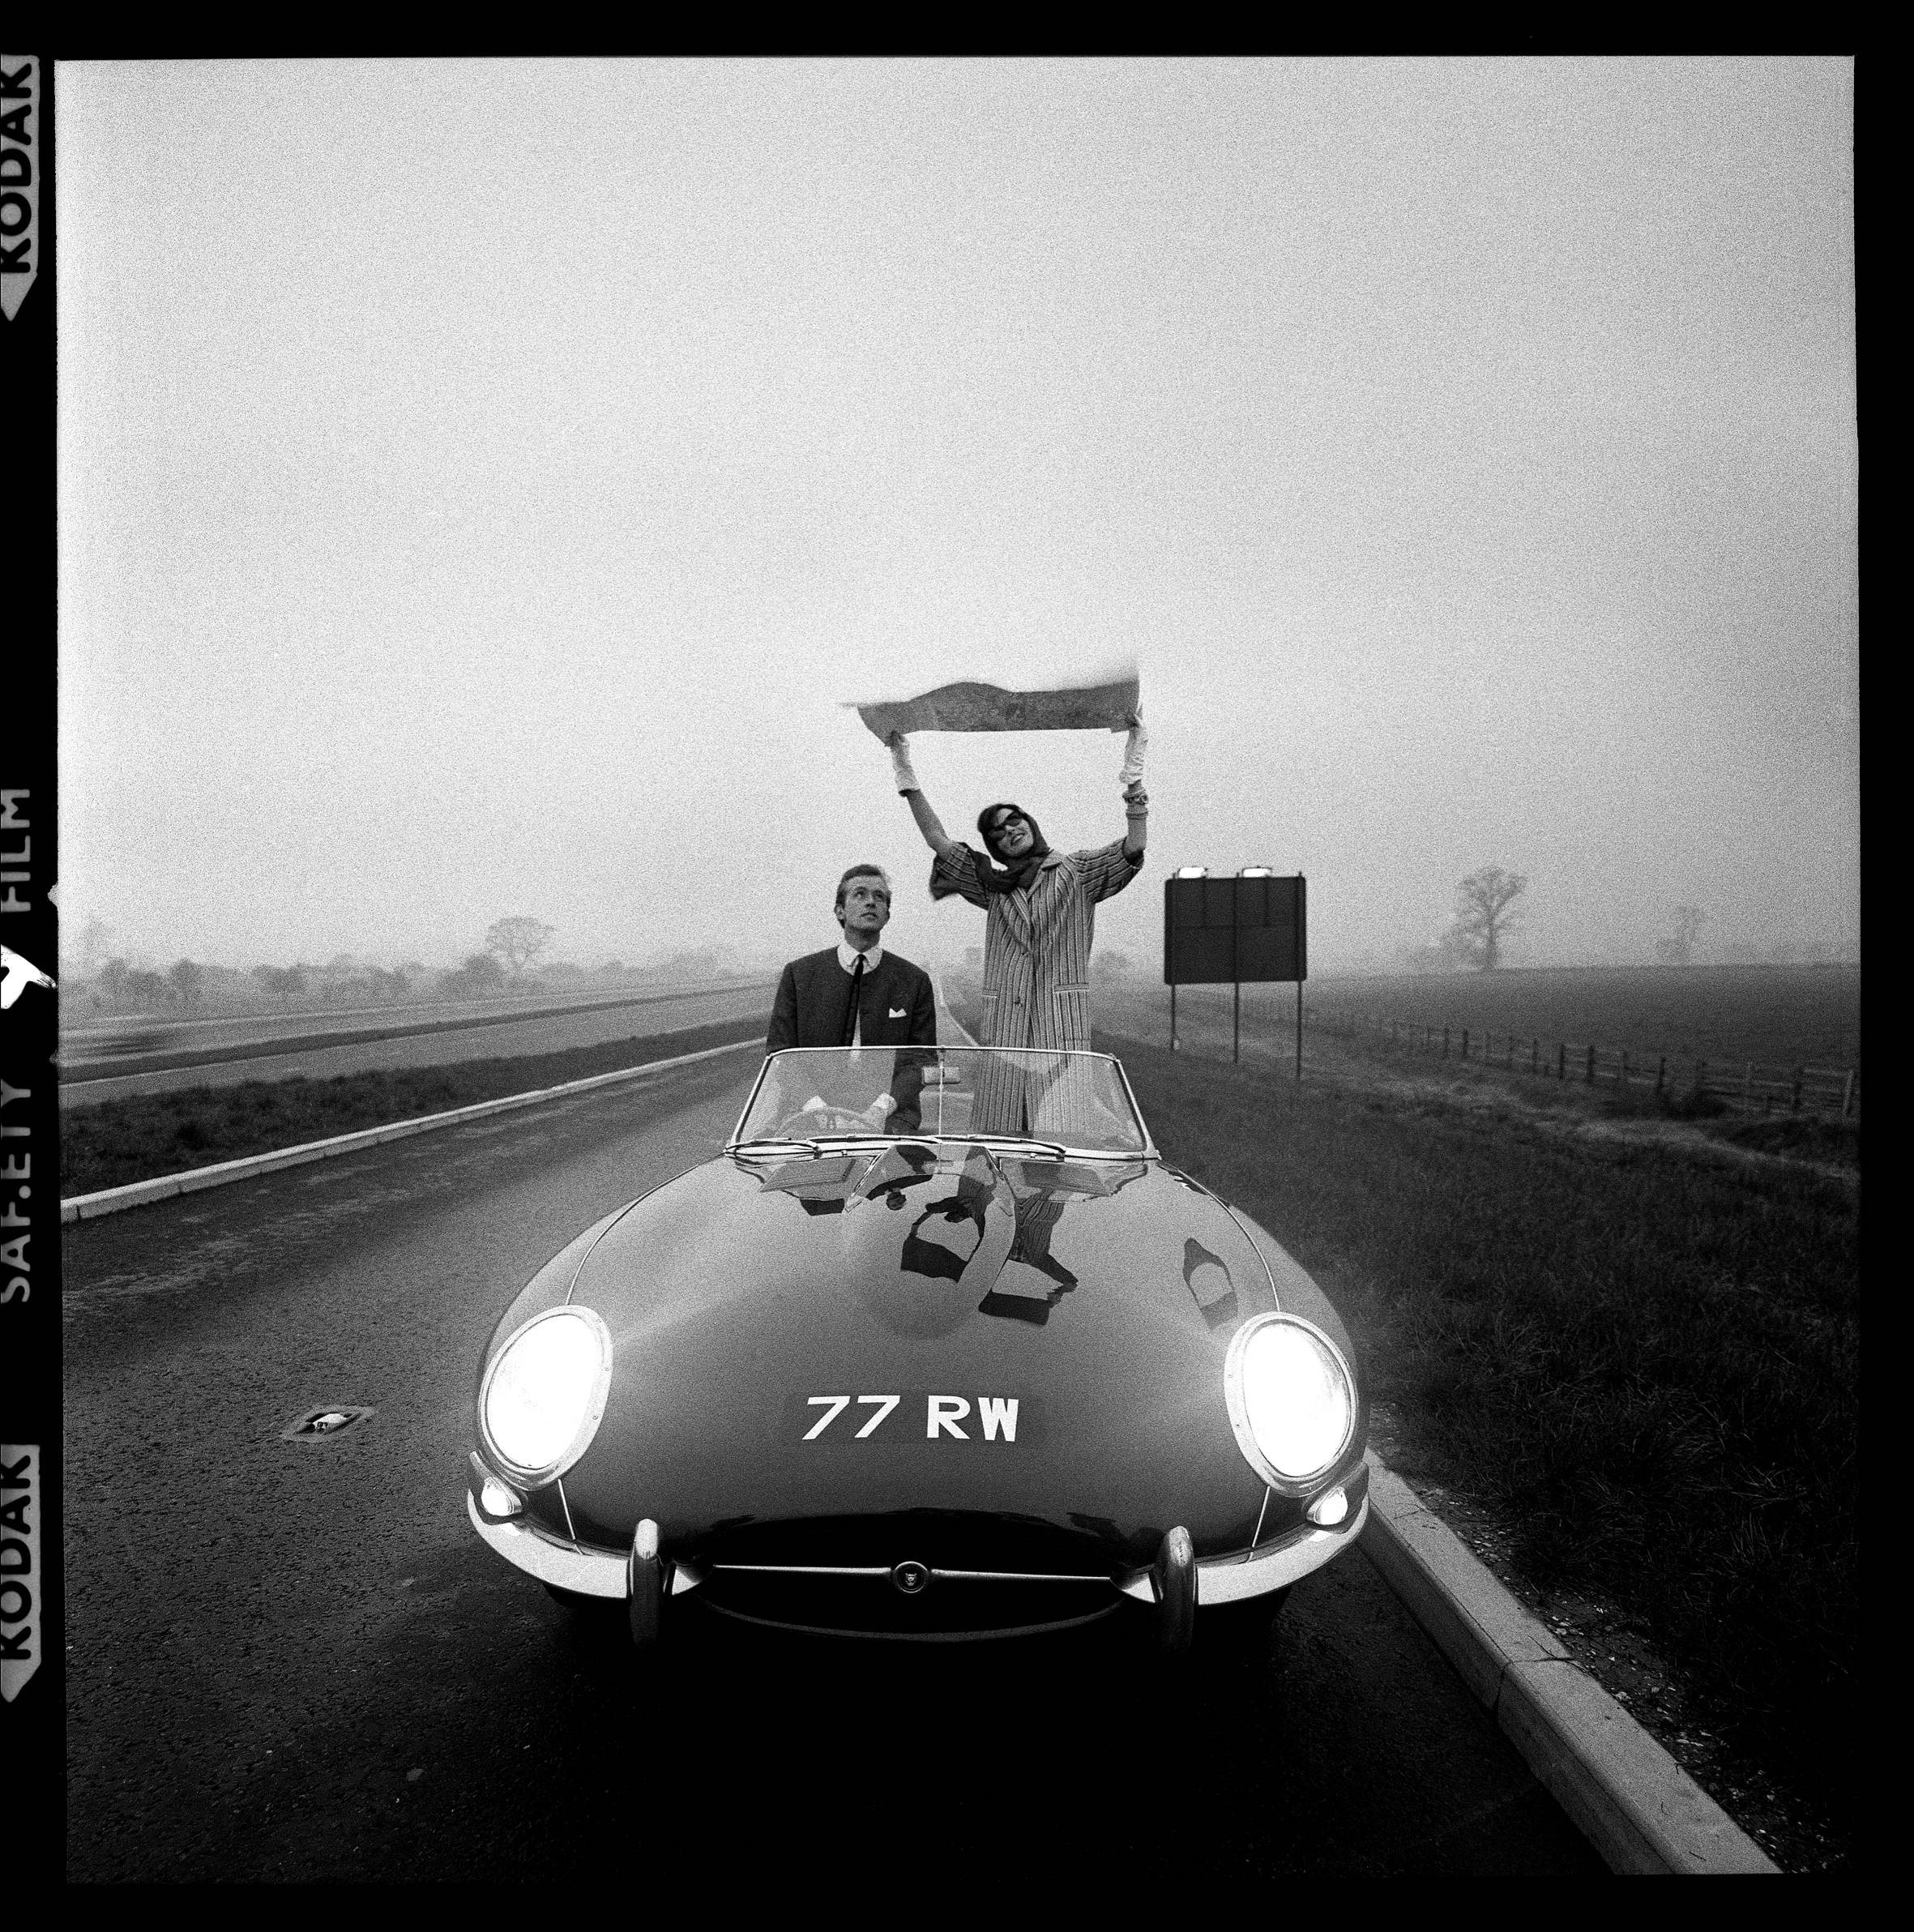 E-type Jaguar on the M1 Motorway, soon after it opened for Vogue Magazine, 1960